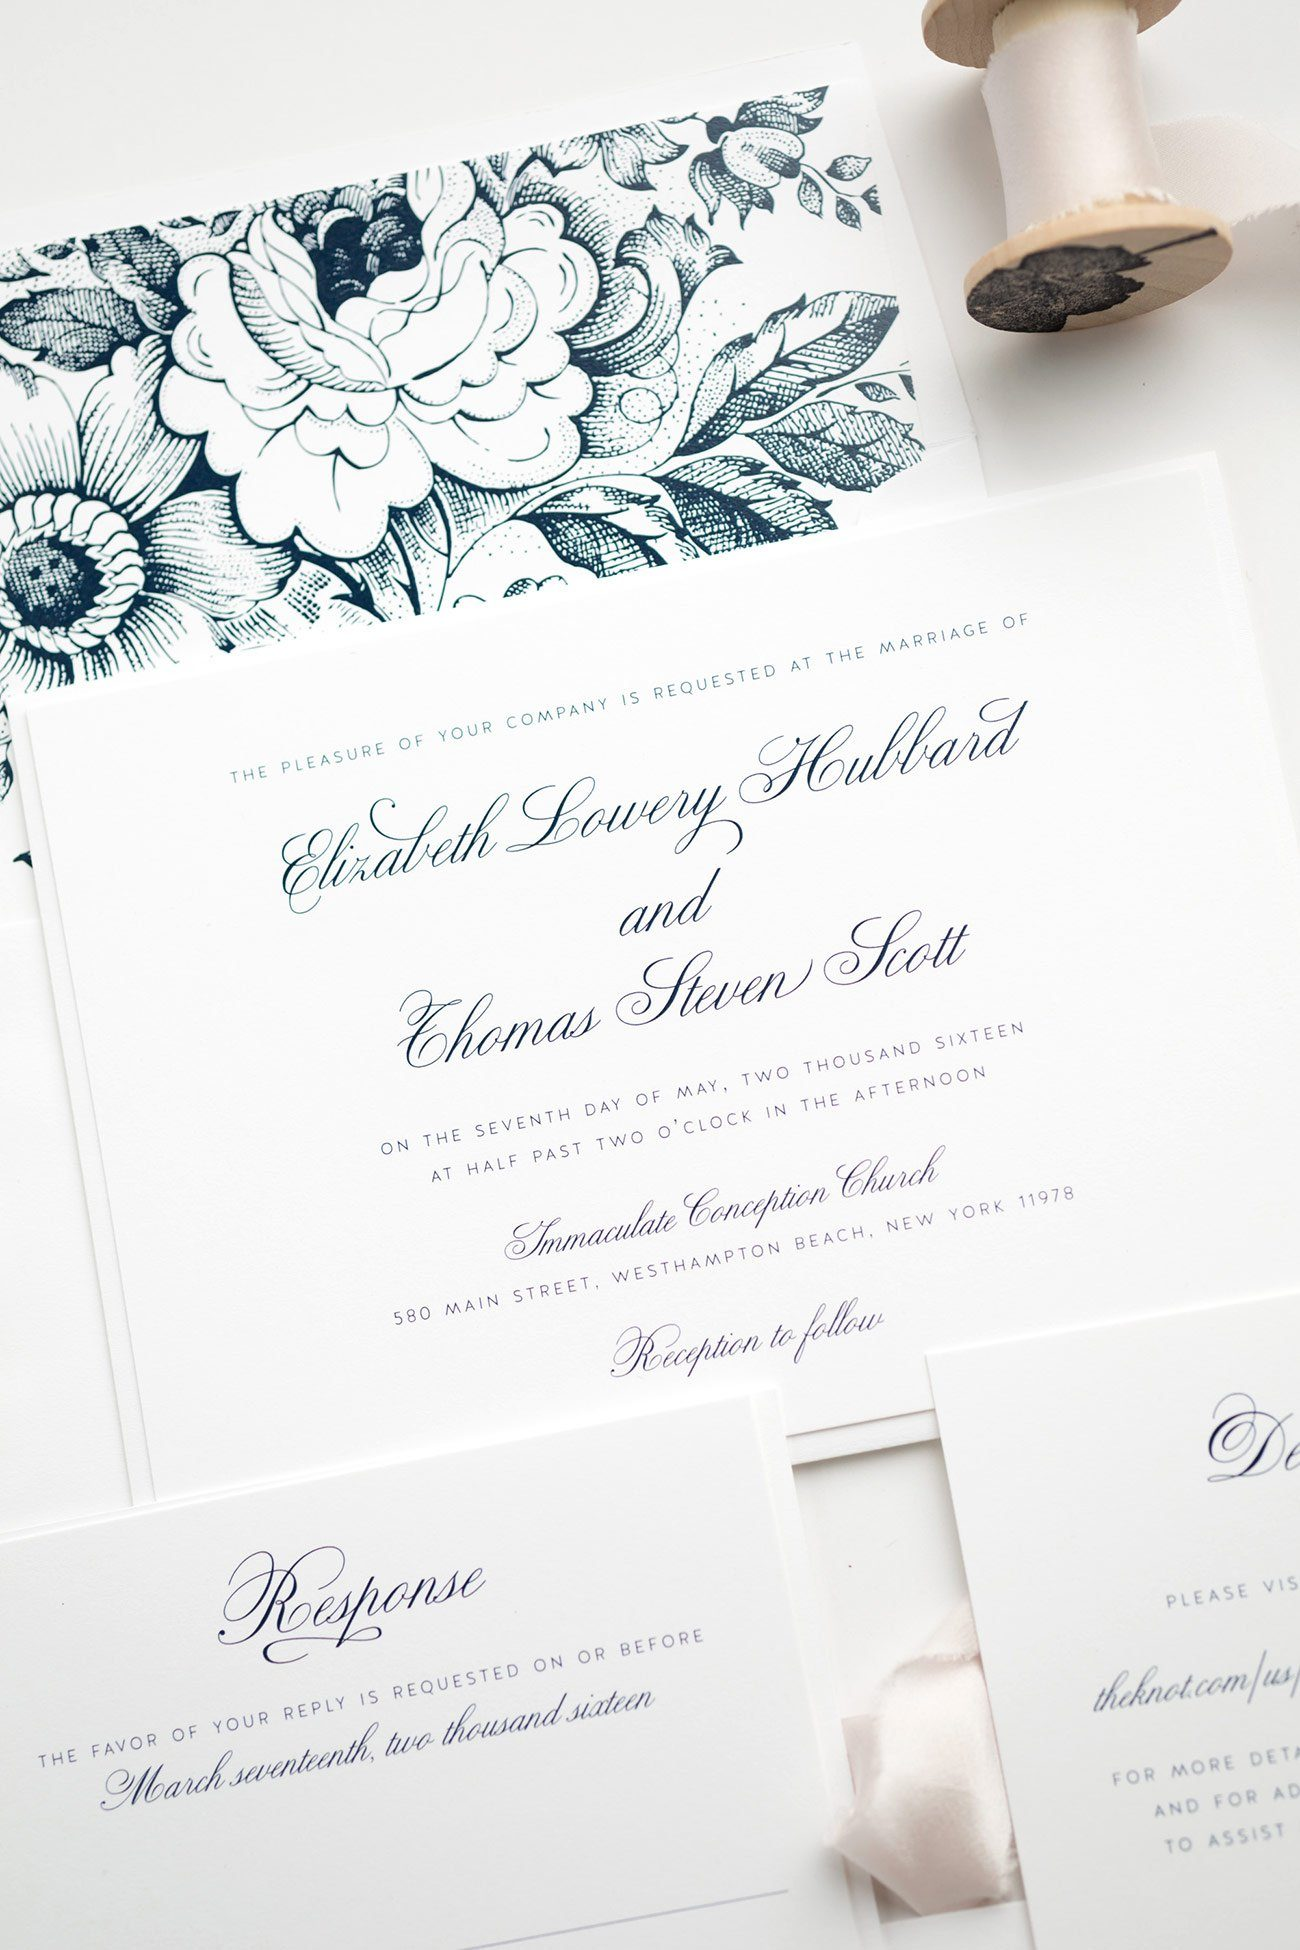 Simple and Elegant Wedding Invitation in Navy Blue with Floral Accents